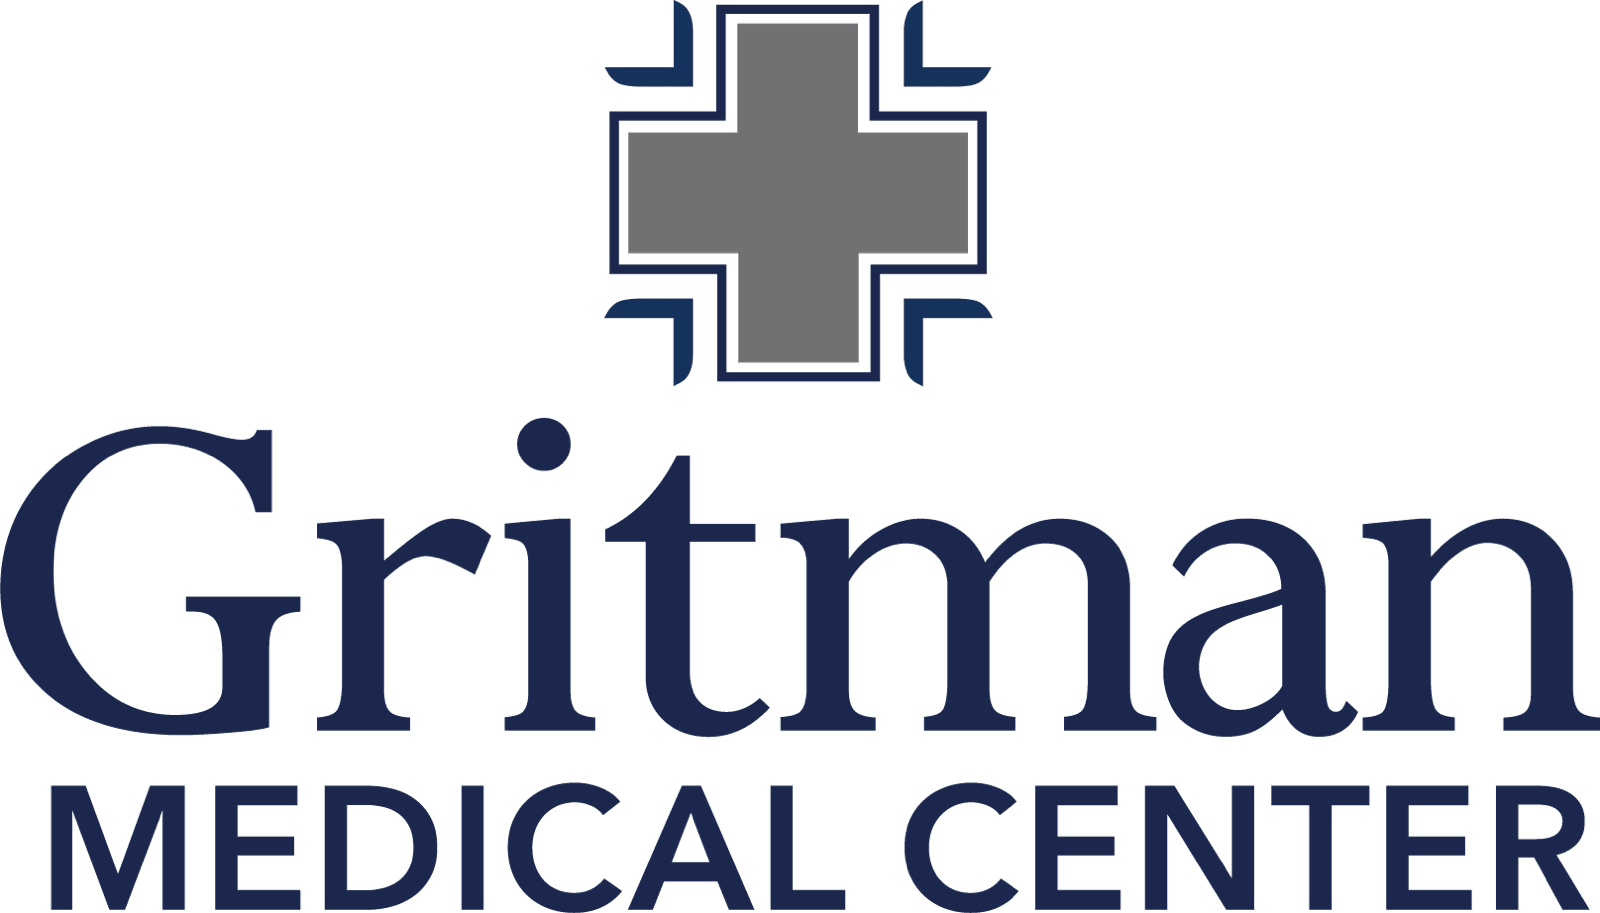 Gritman Medical Center logo